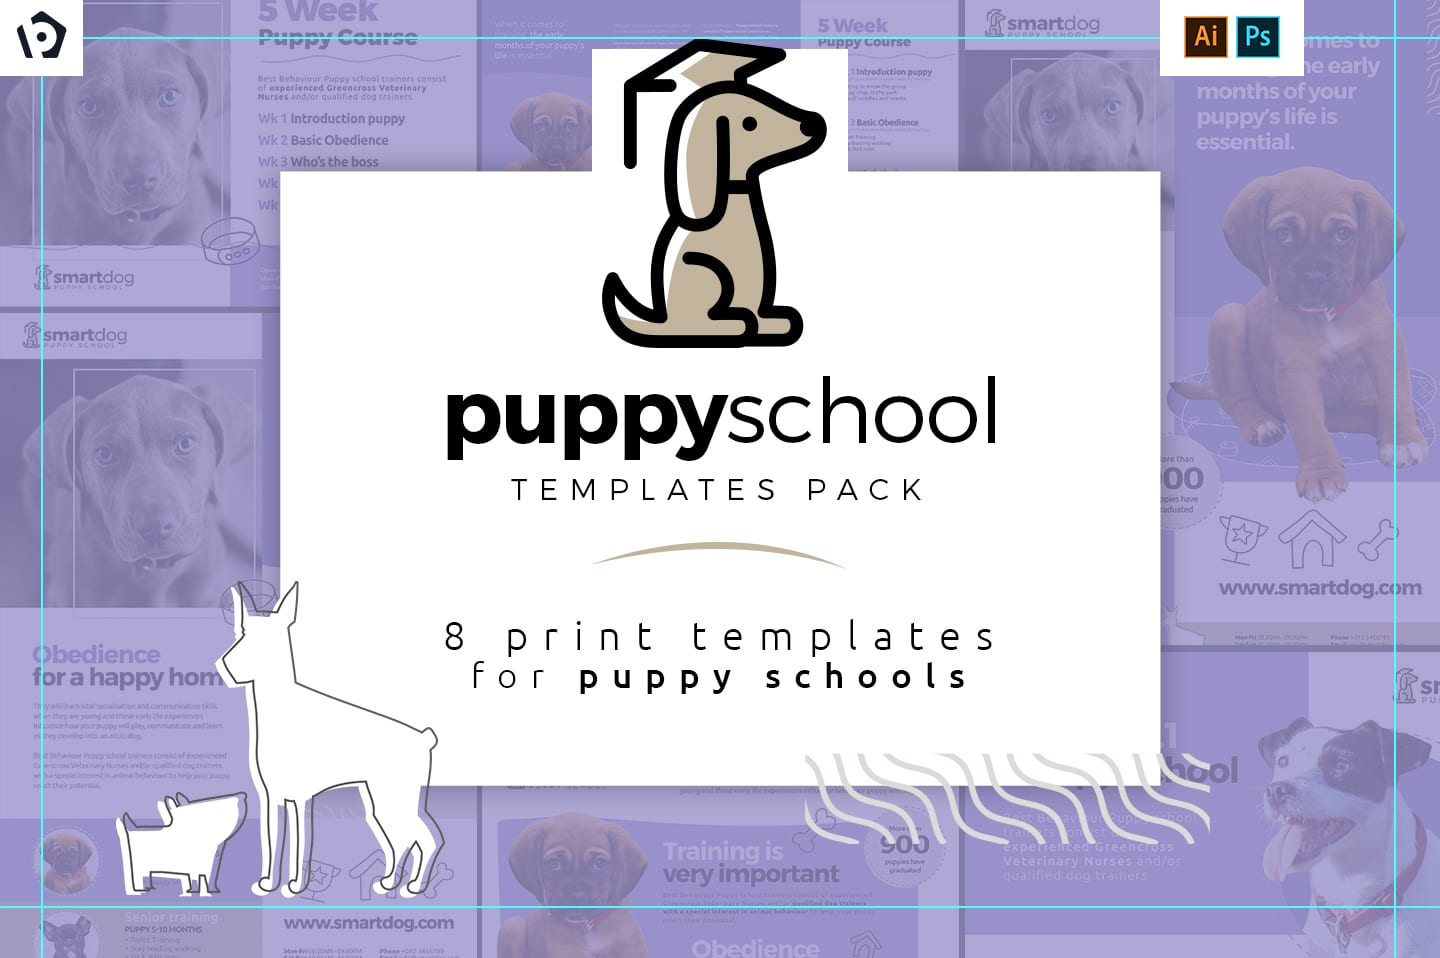 Puppy School Templates Pack